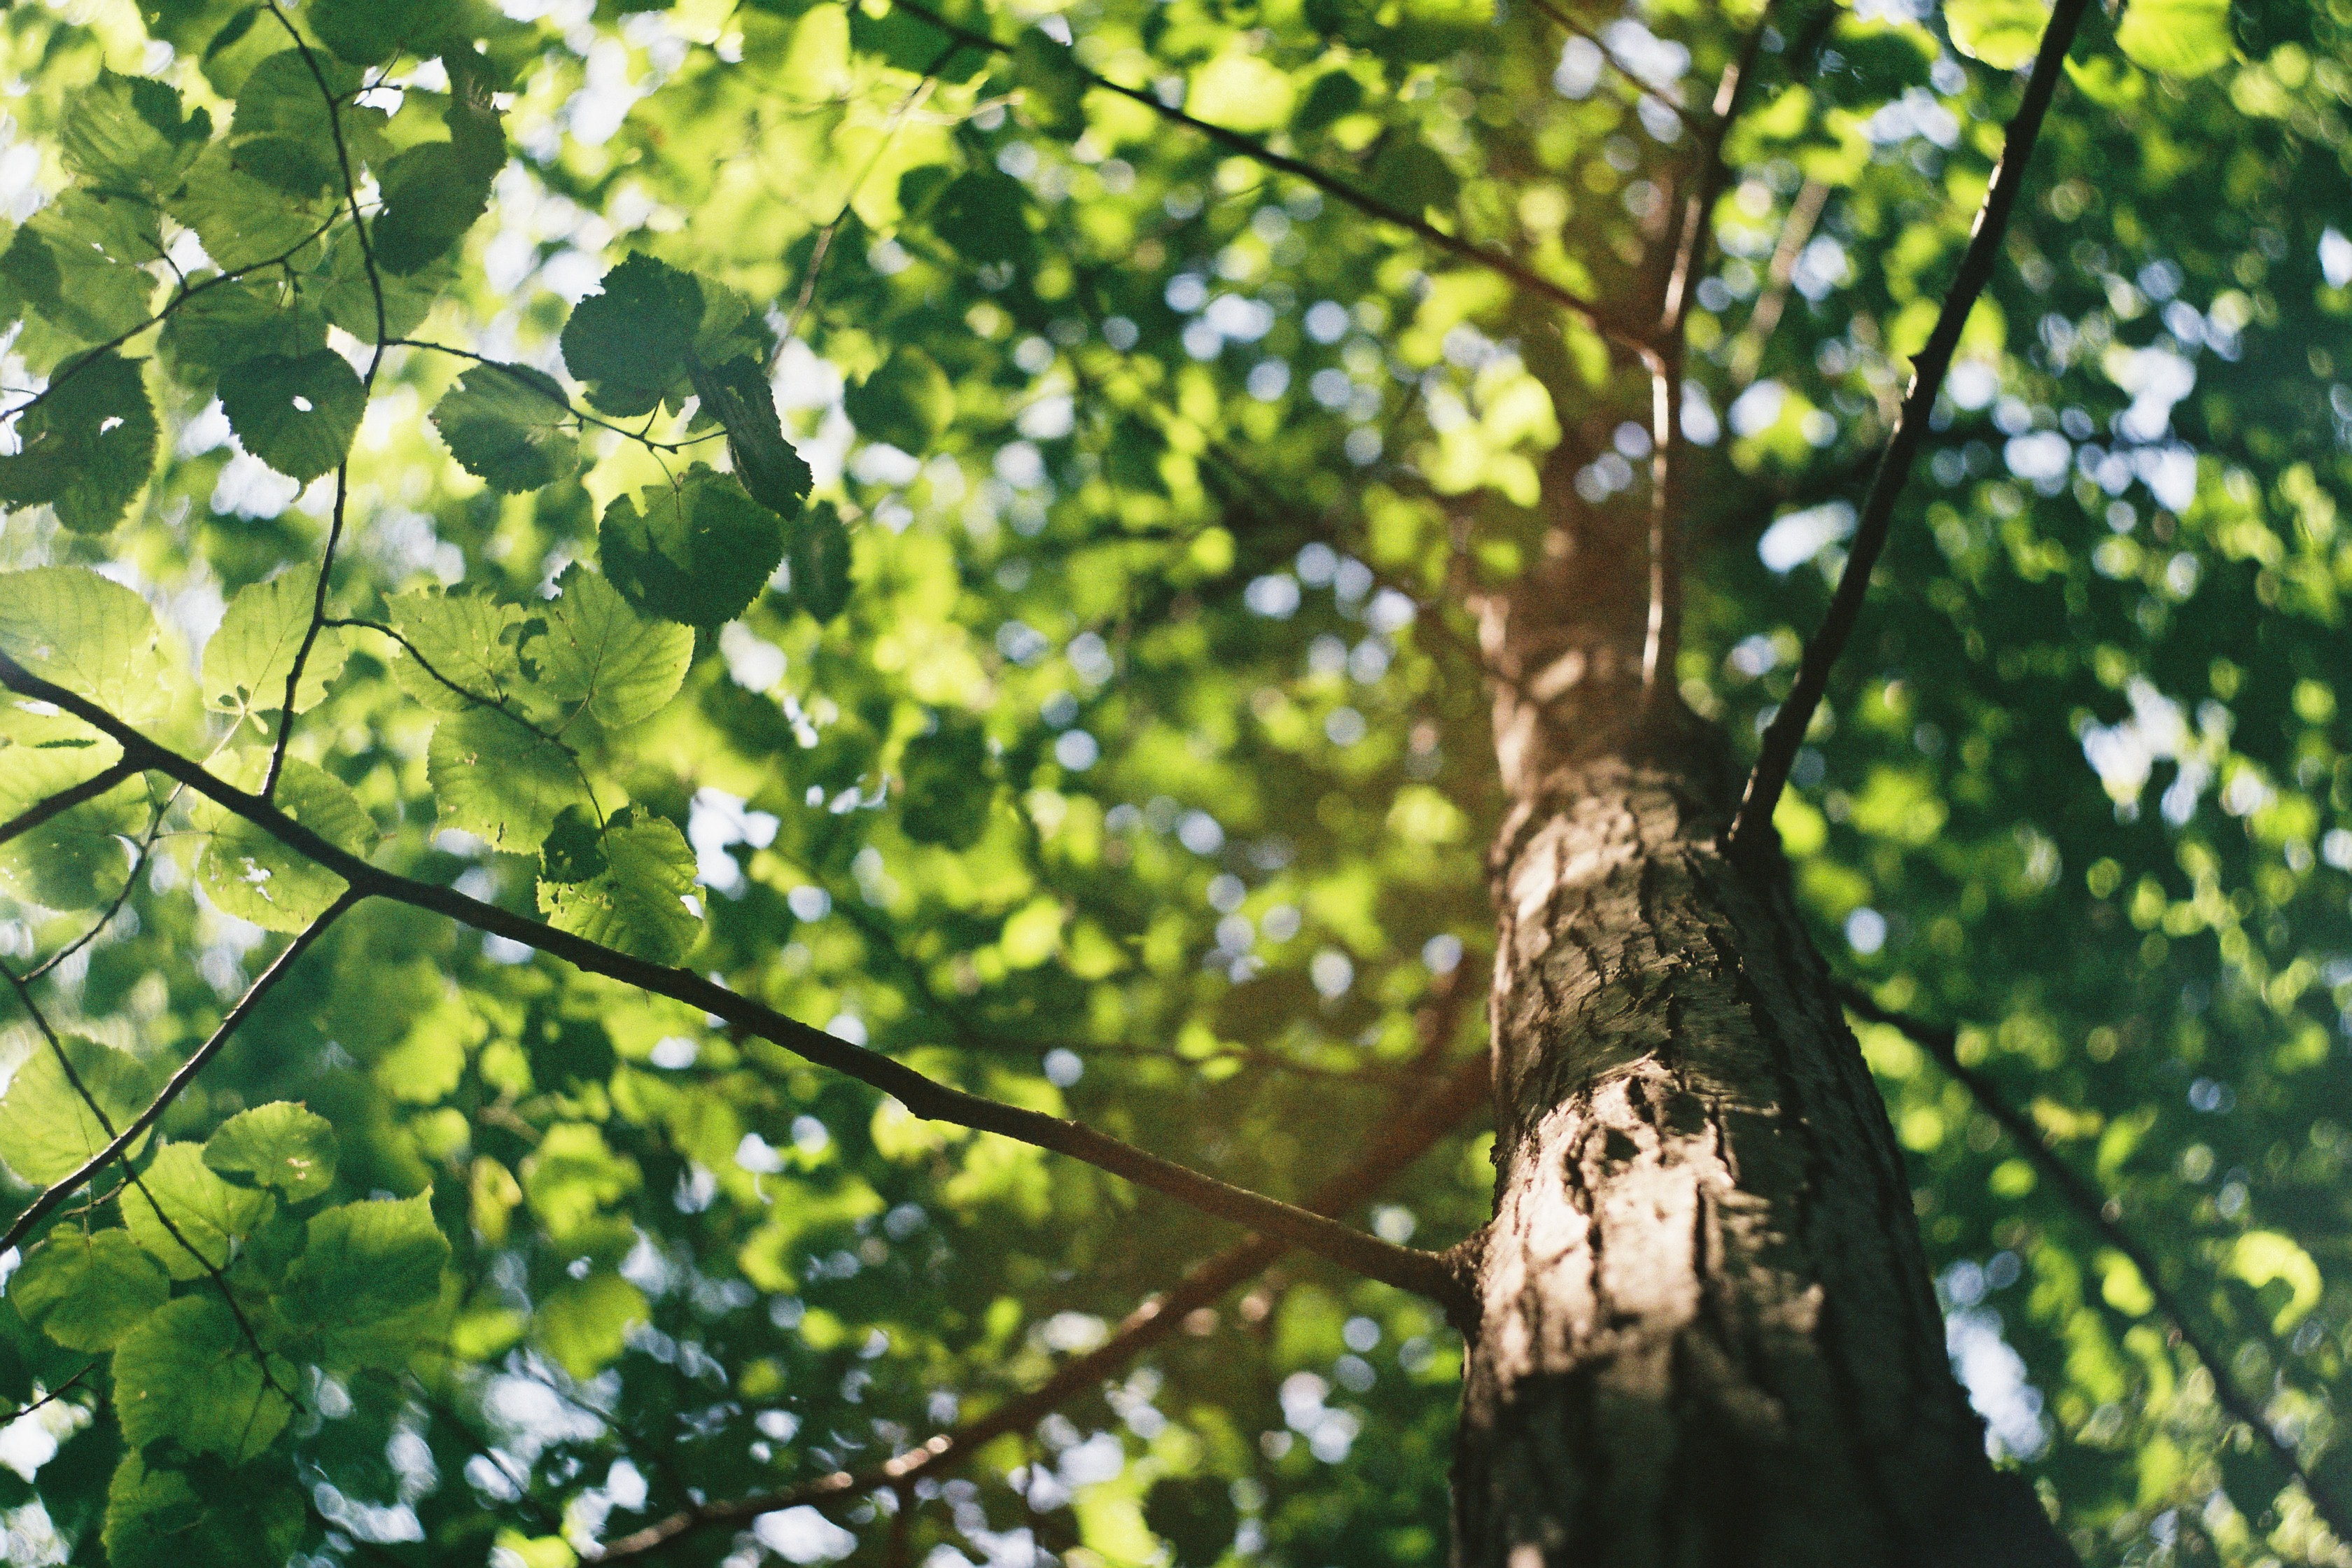 How Do You Take Care of Trees and Shrubs?